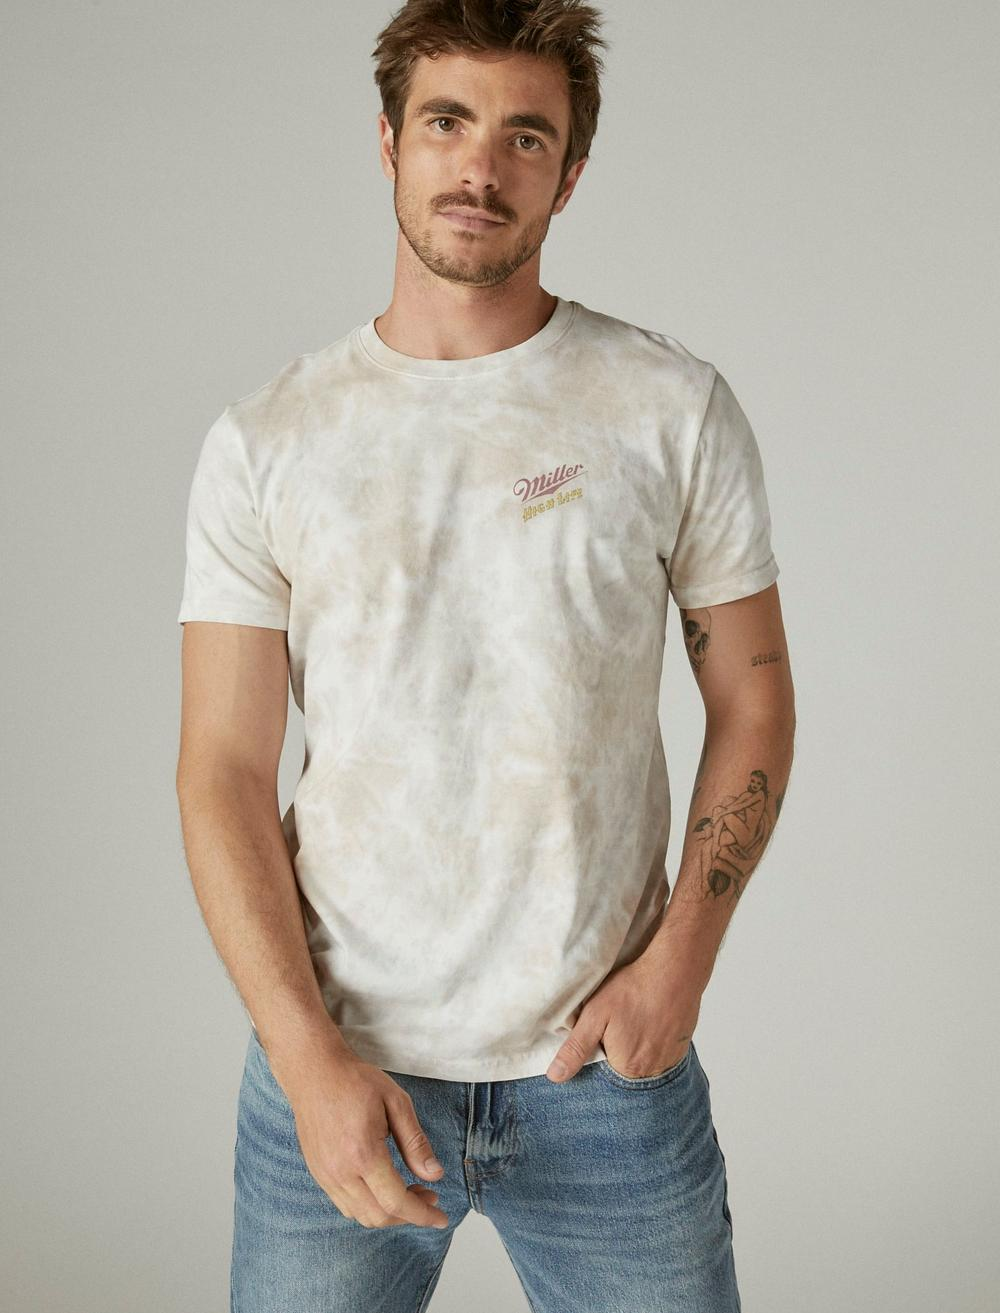 MILLER HIGH LIFE GRAPHIC TEE, image 1